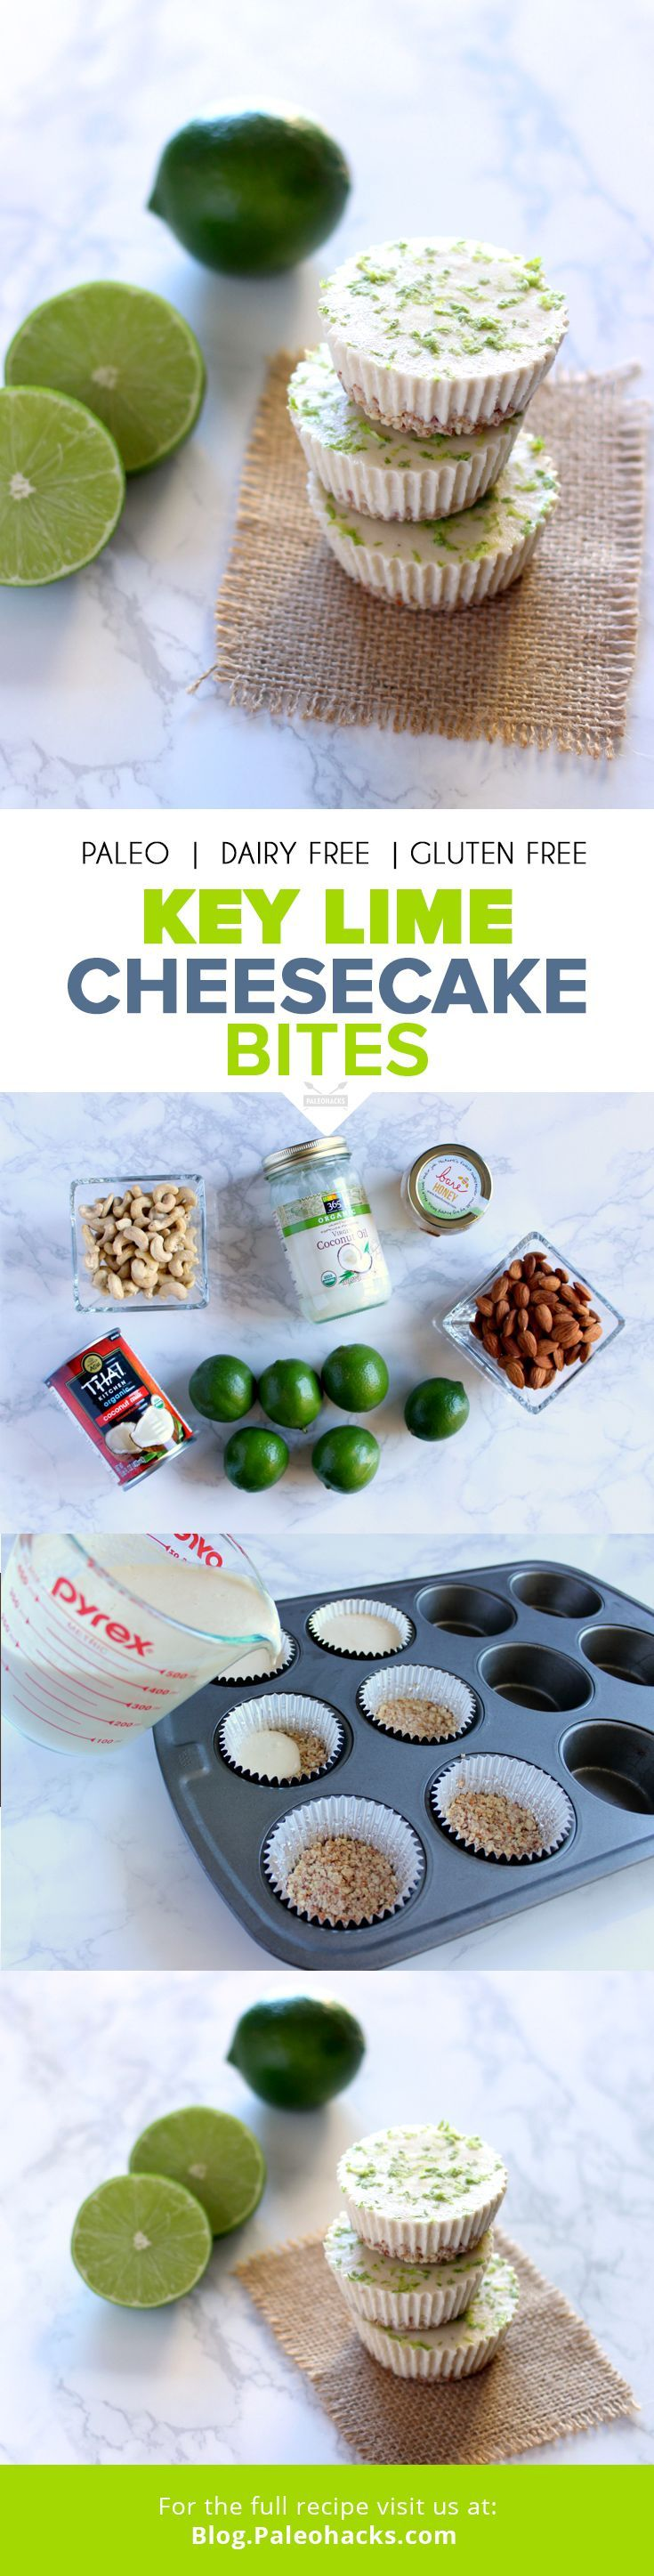 These Key Lime Cheesecake Bites make for the perfect cool dessert. The best part? No baking required! All you need is a few simple ingredients to whip up these sweet treats. Get the recipe here: http://paleo.co/keylimebites